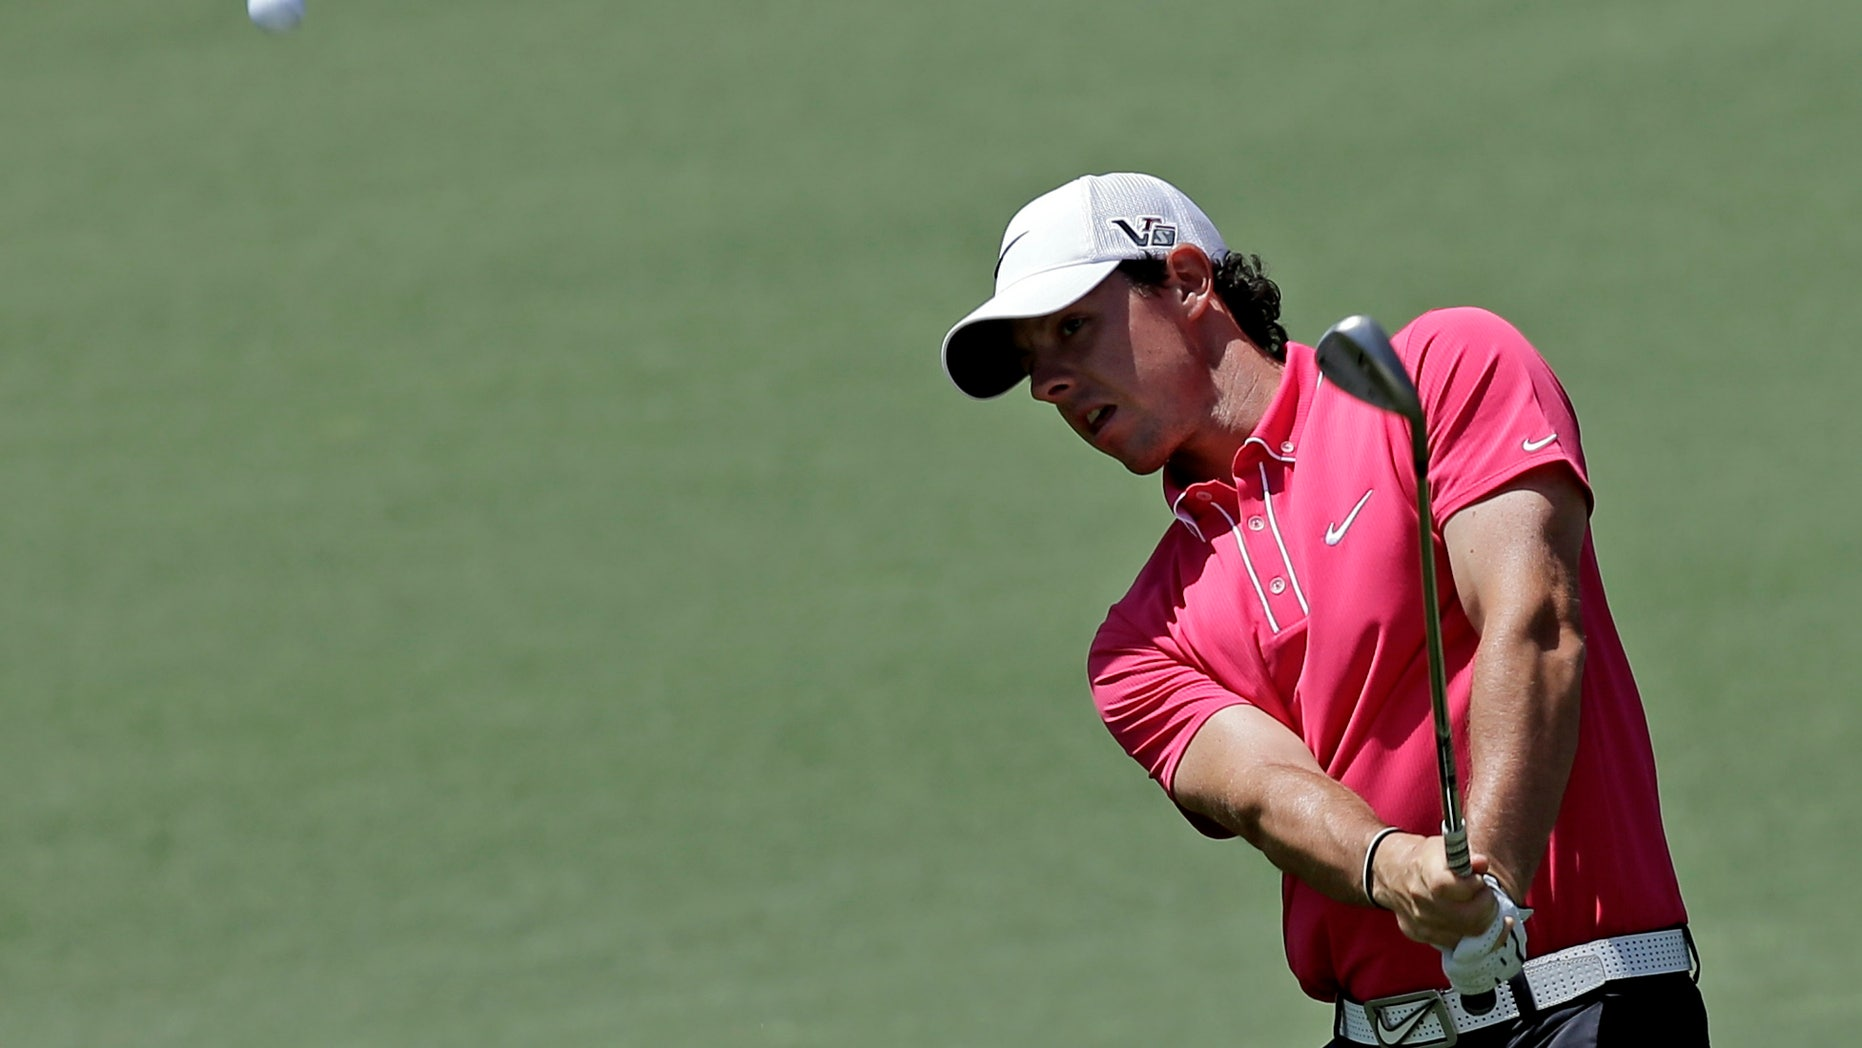 Rory McIlroy, of Northern Ireland, chips to the second green during the third round of the Masters golf tournament Saturday, April 13, 2013, in Augusta, Ga. (AP Photo/David J. Phillip)